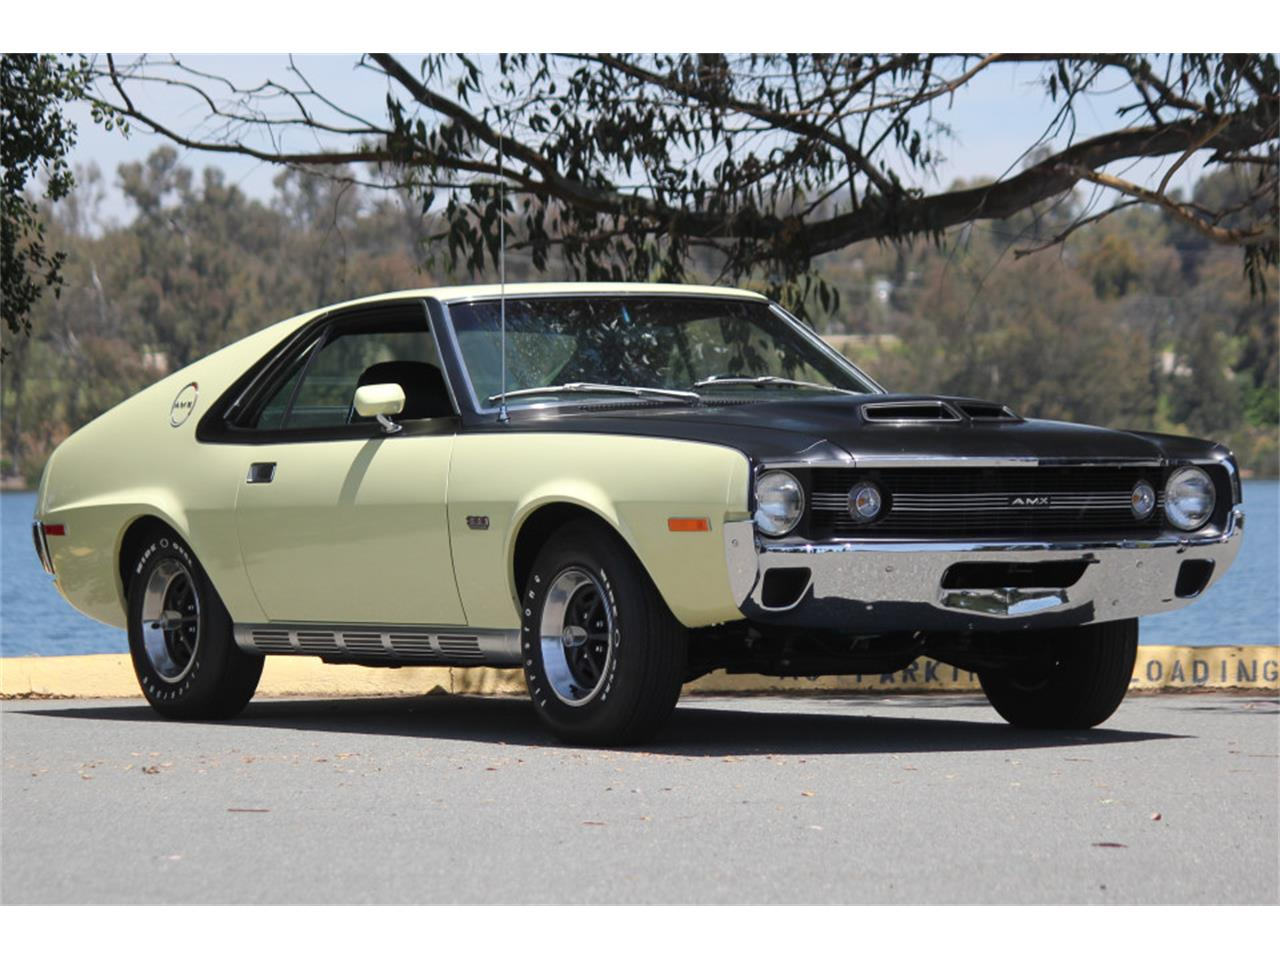 Large Picture of Classic '70 AMX located in San Diego  California - QCFB